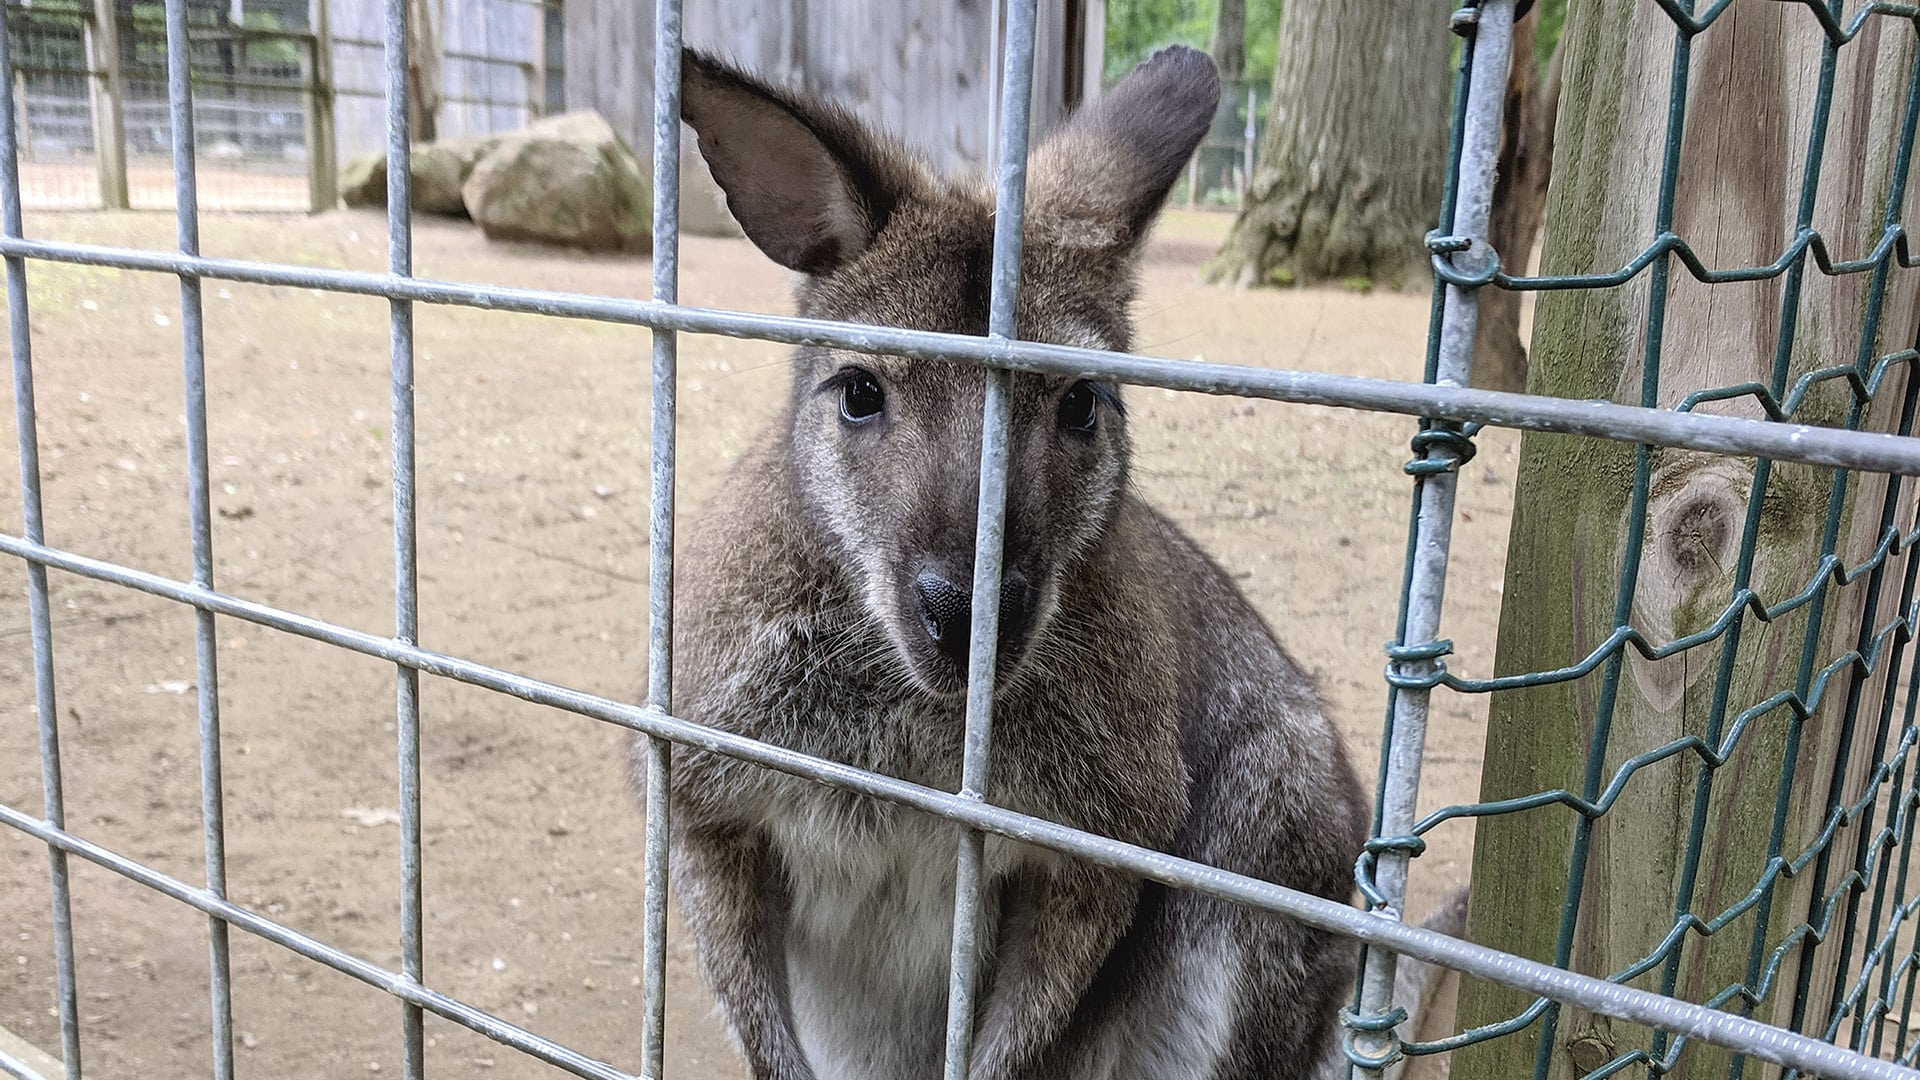 This wallaby is one of some 150 species of animals living at the Zoo in Forest Park.